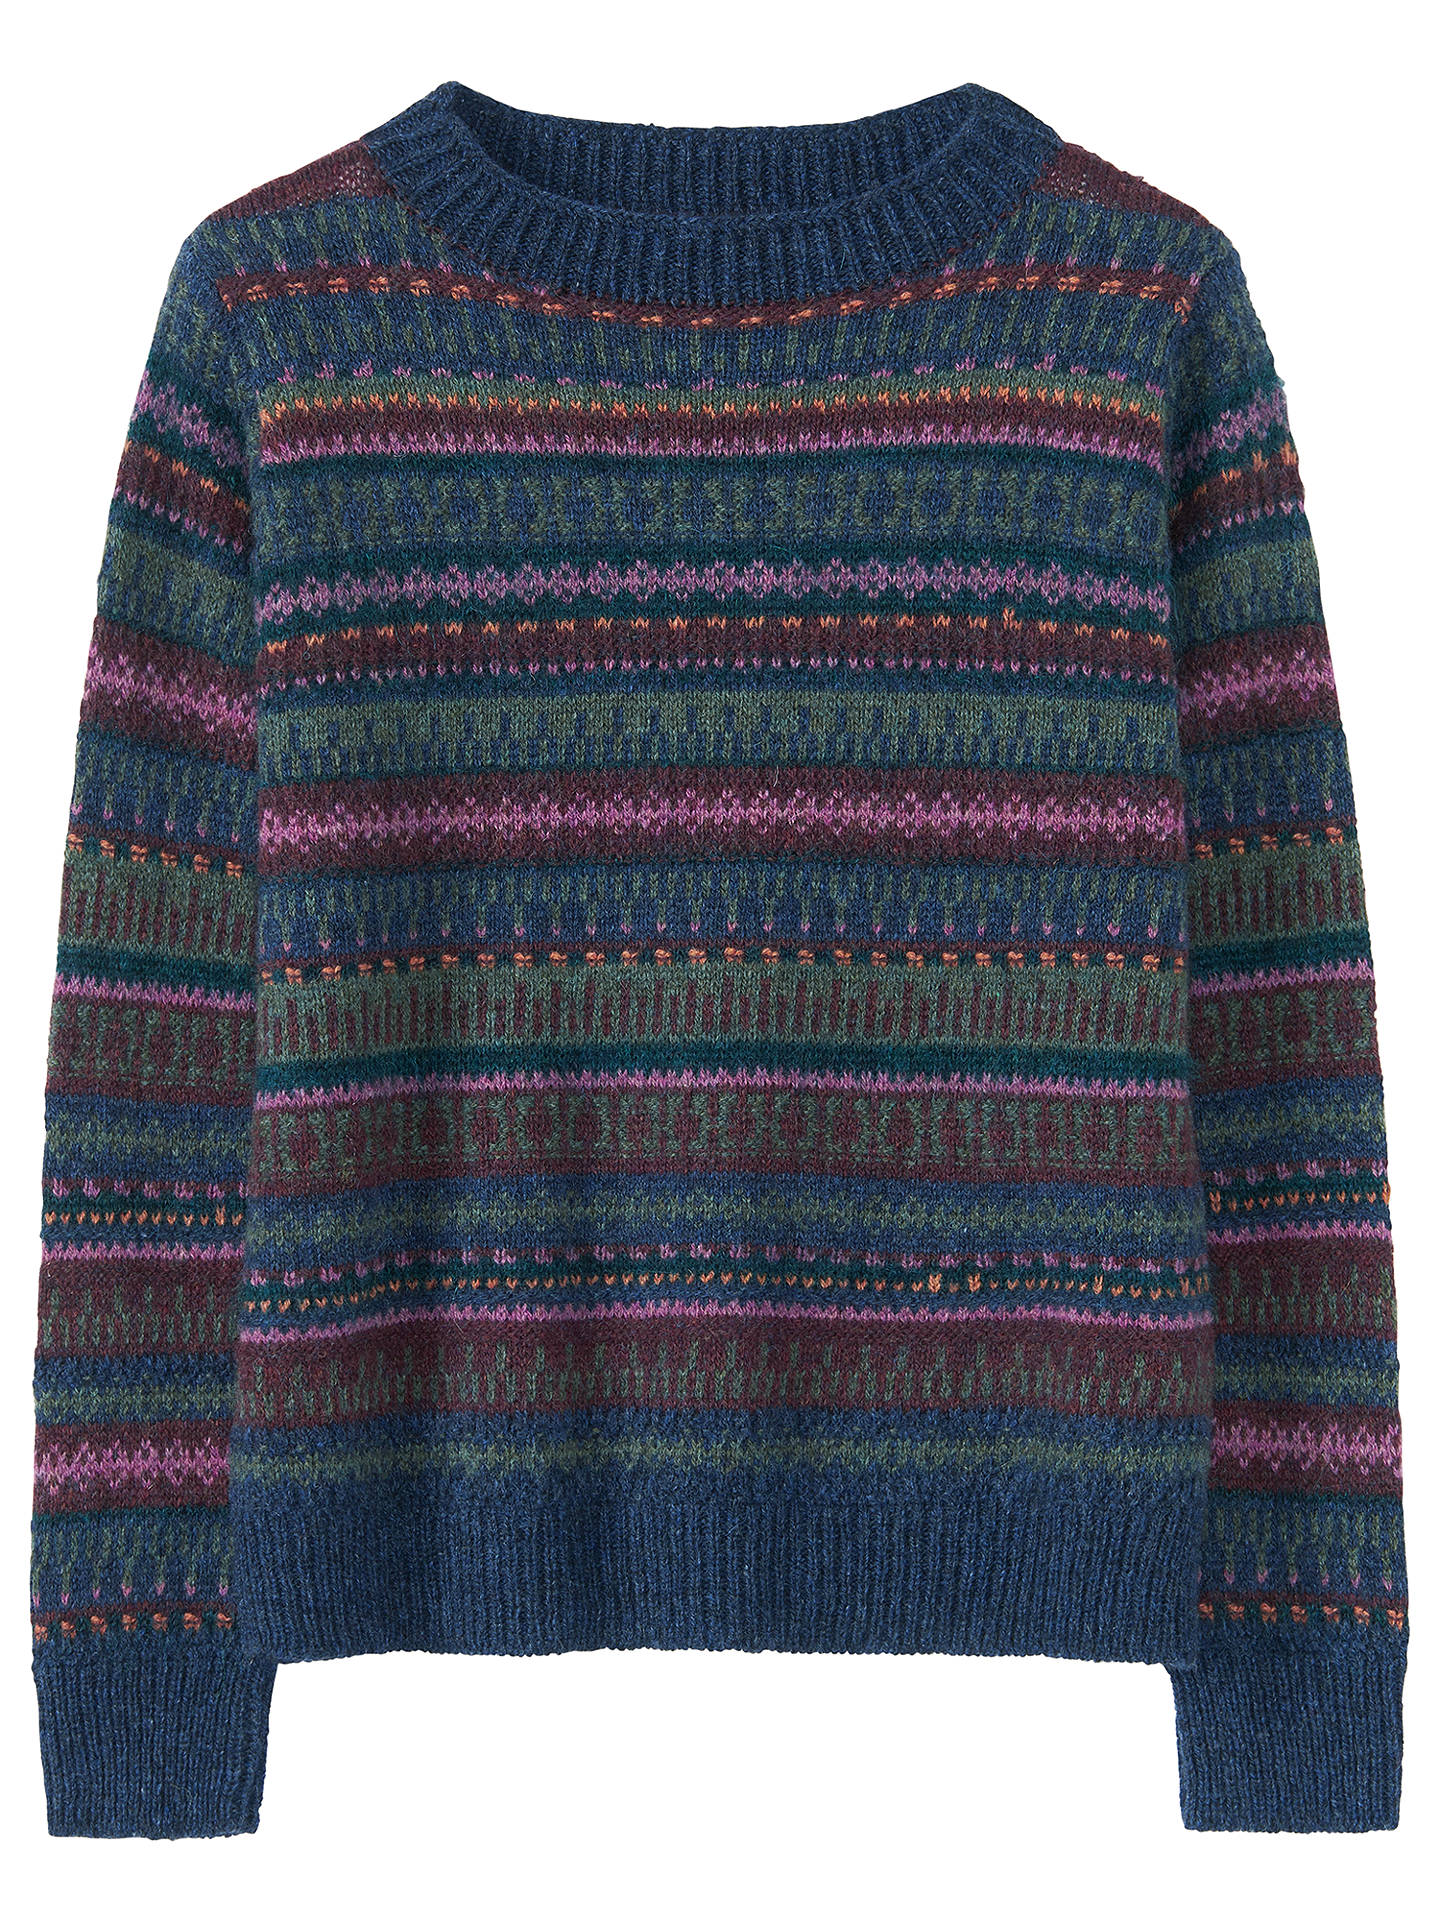 BuyToast Fair Isle Textured Jumper, Indigo/Multi, XS Online at johnlewis.com